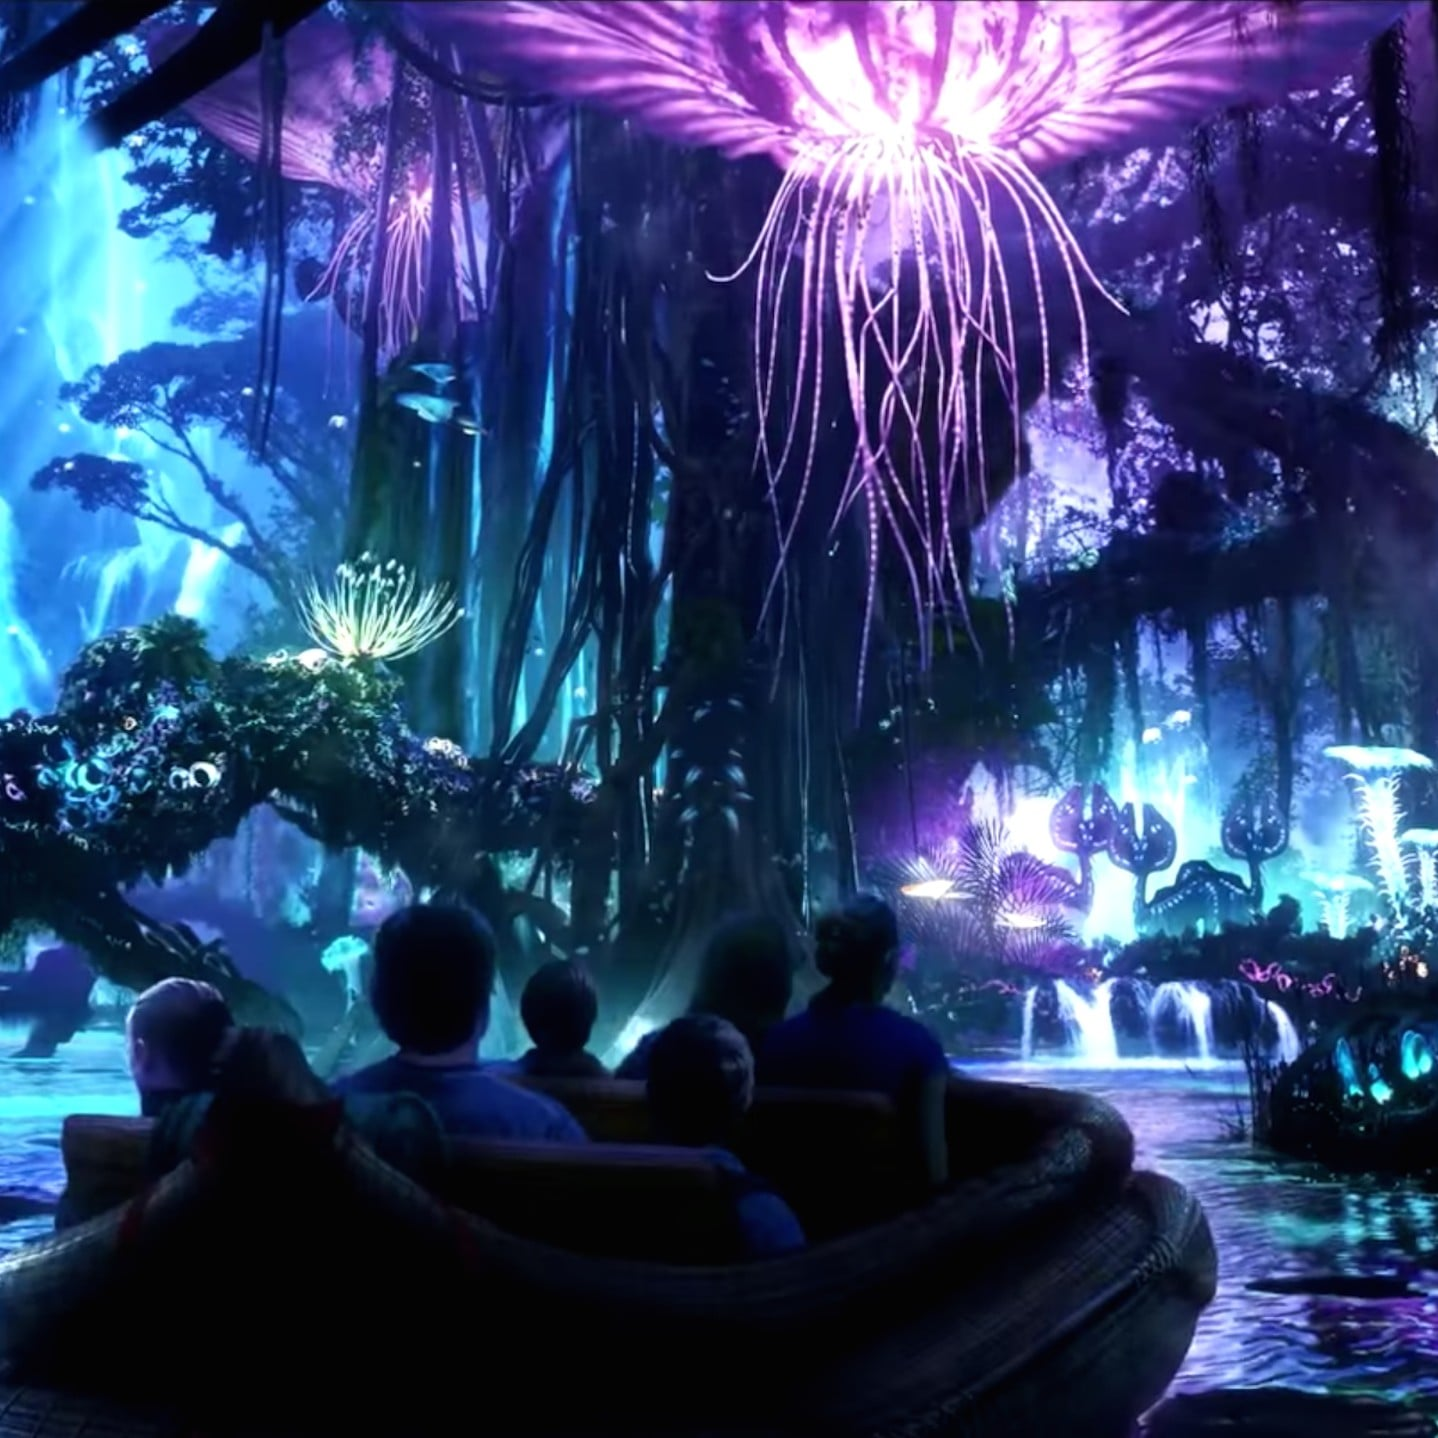 Pandora Avatar Land In Disneys Animal Kingdom